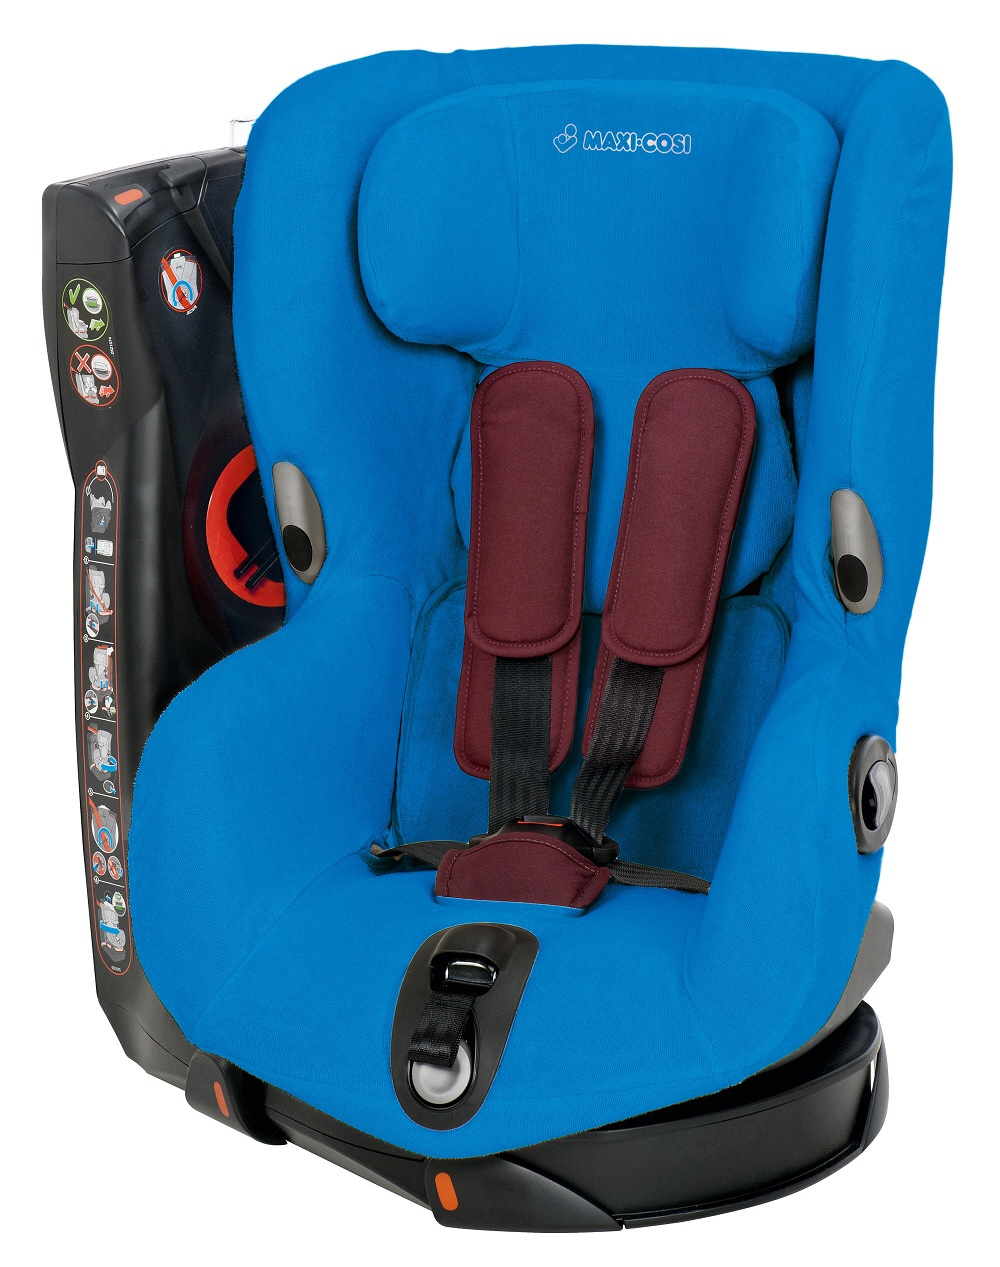 Maxi Cosi Axiss Car Seat Price